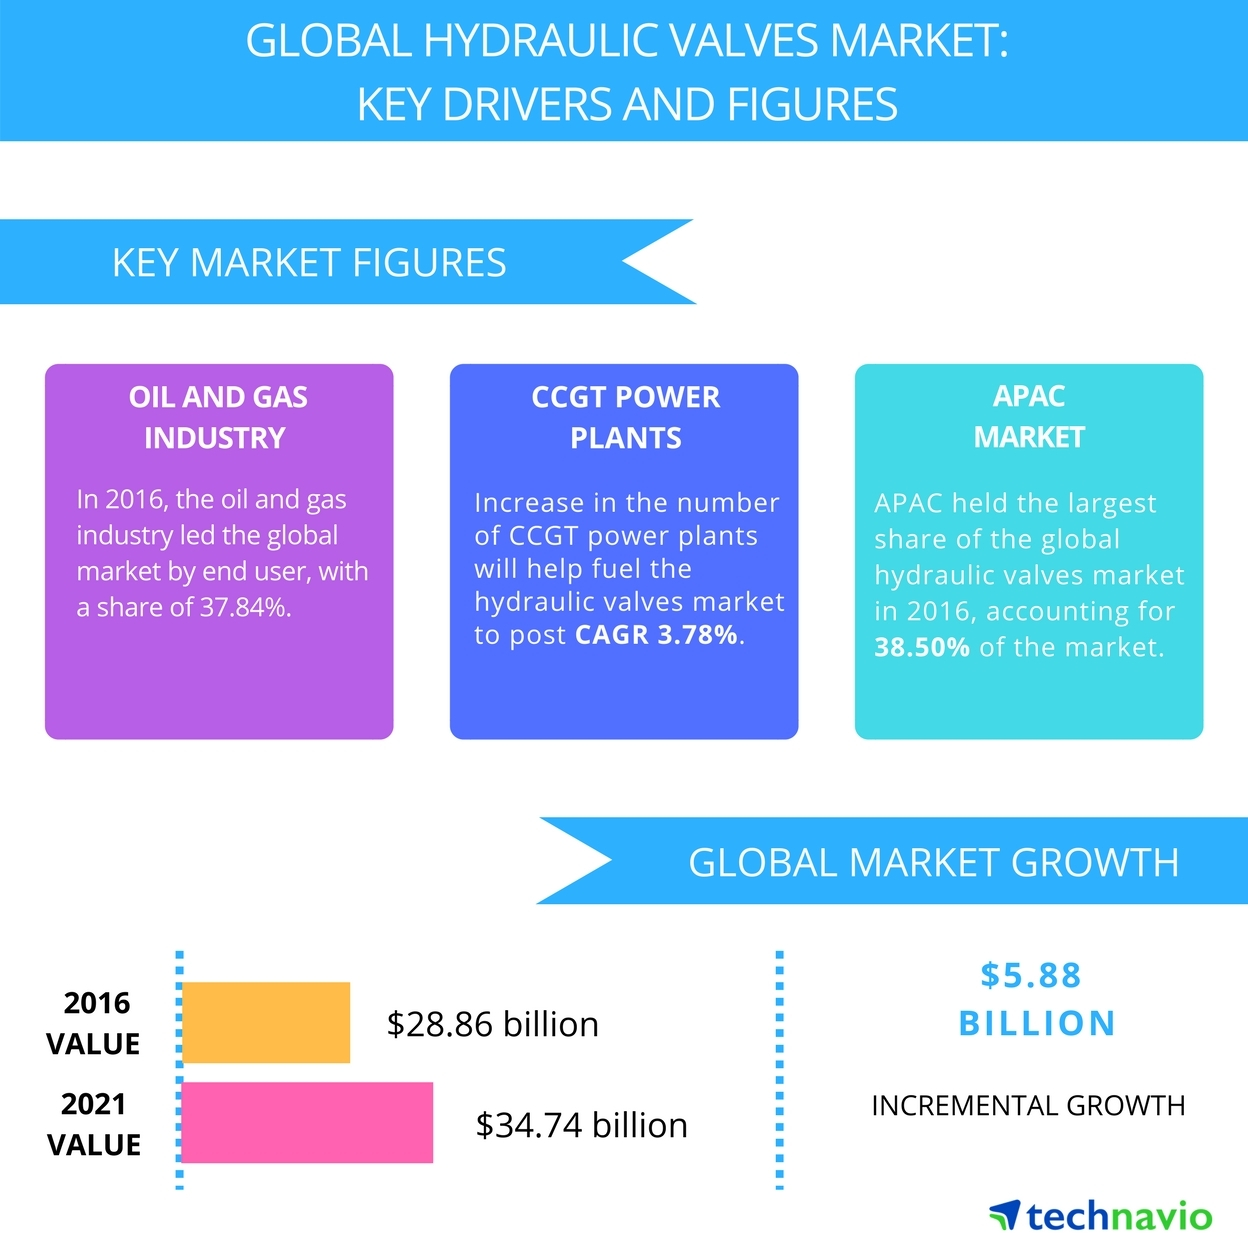 Technavio has published a new report on the global hydraulic valves market from 2017-2021. (Graphic: Business Wire)